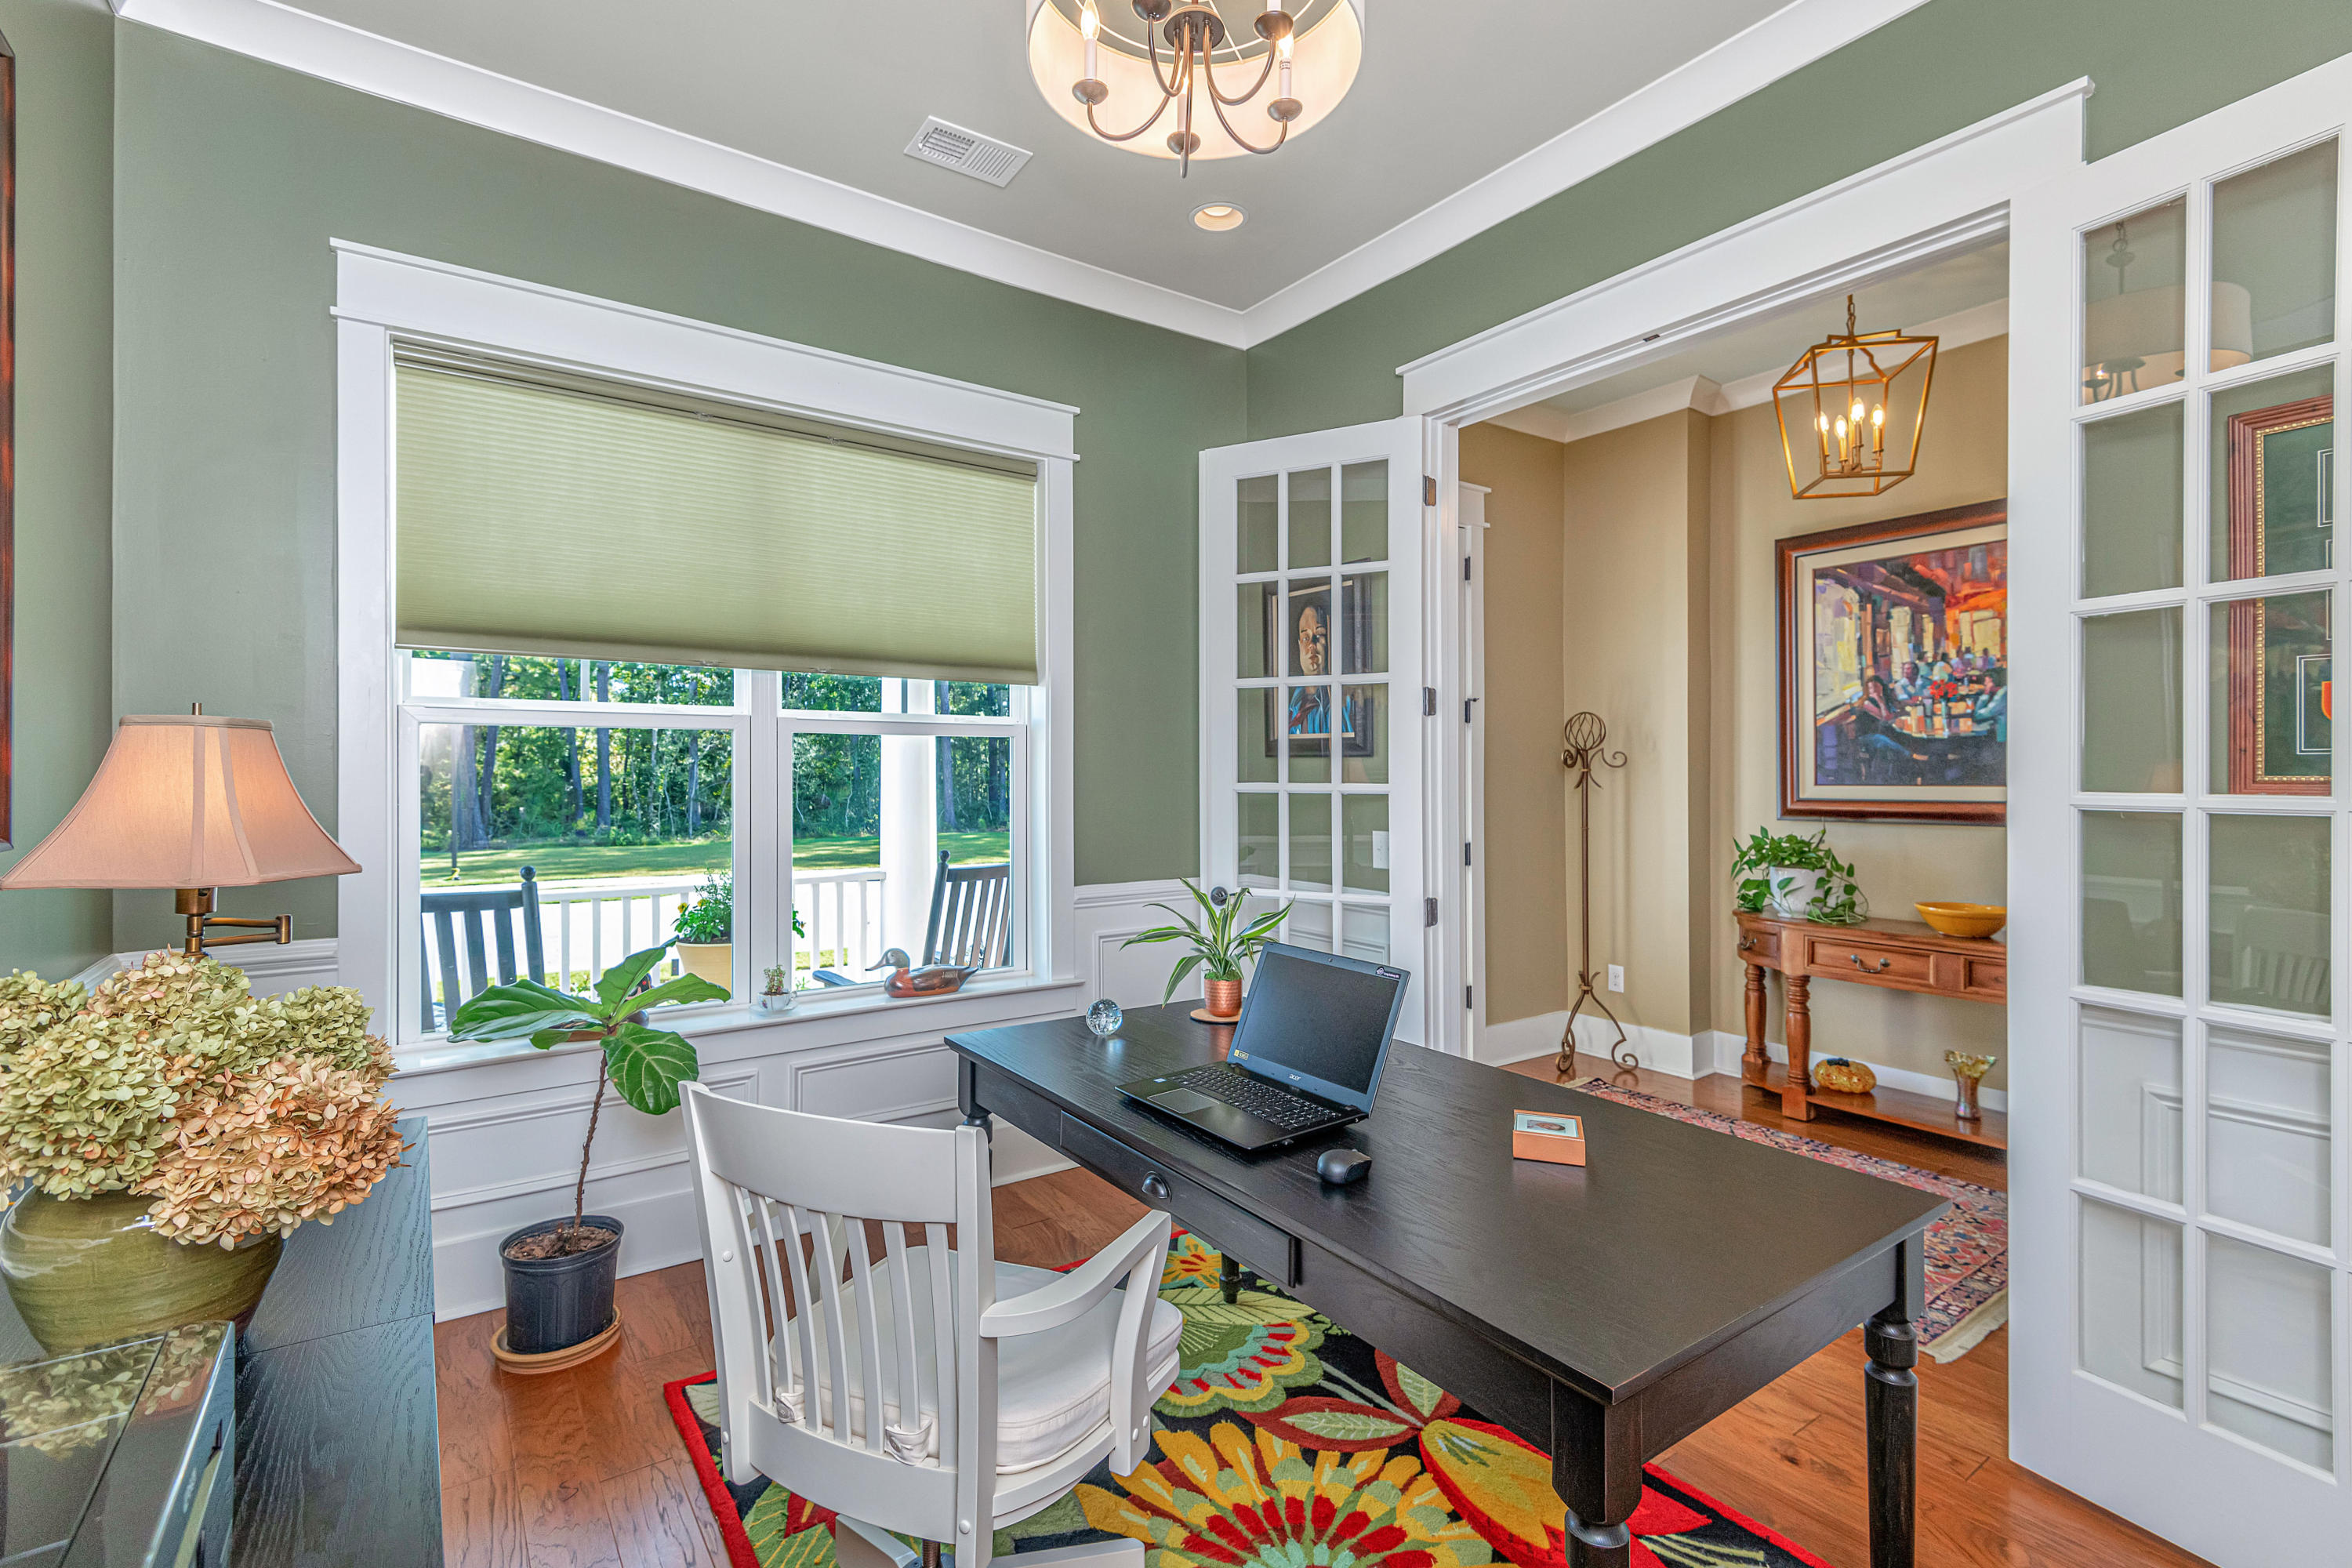 Dunes West Homes For Sale - 2870 Clearwater, Mount Pleasant, SC - 30